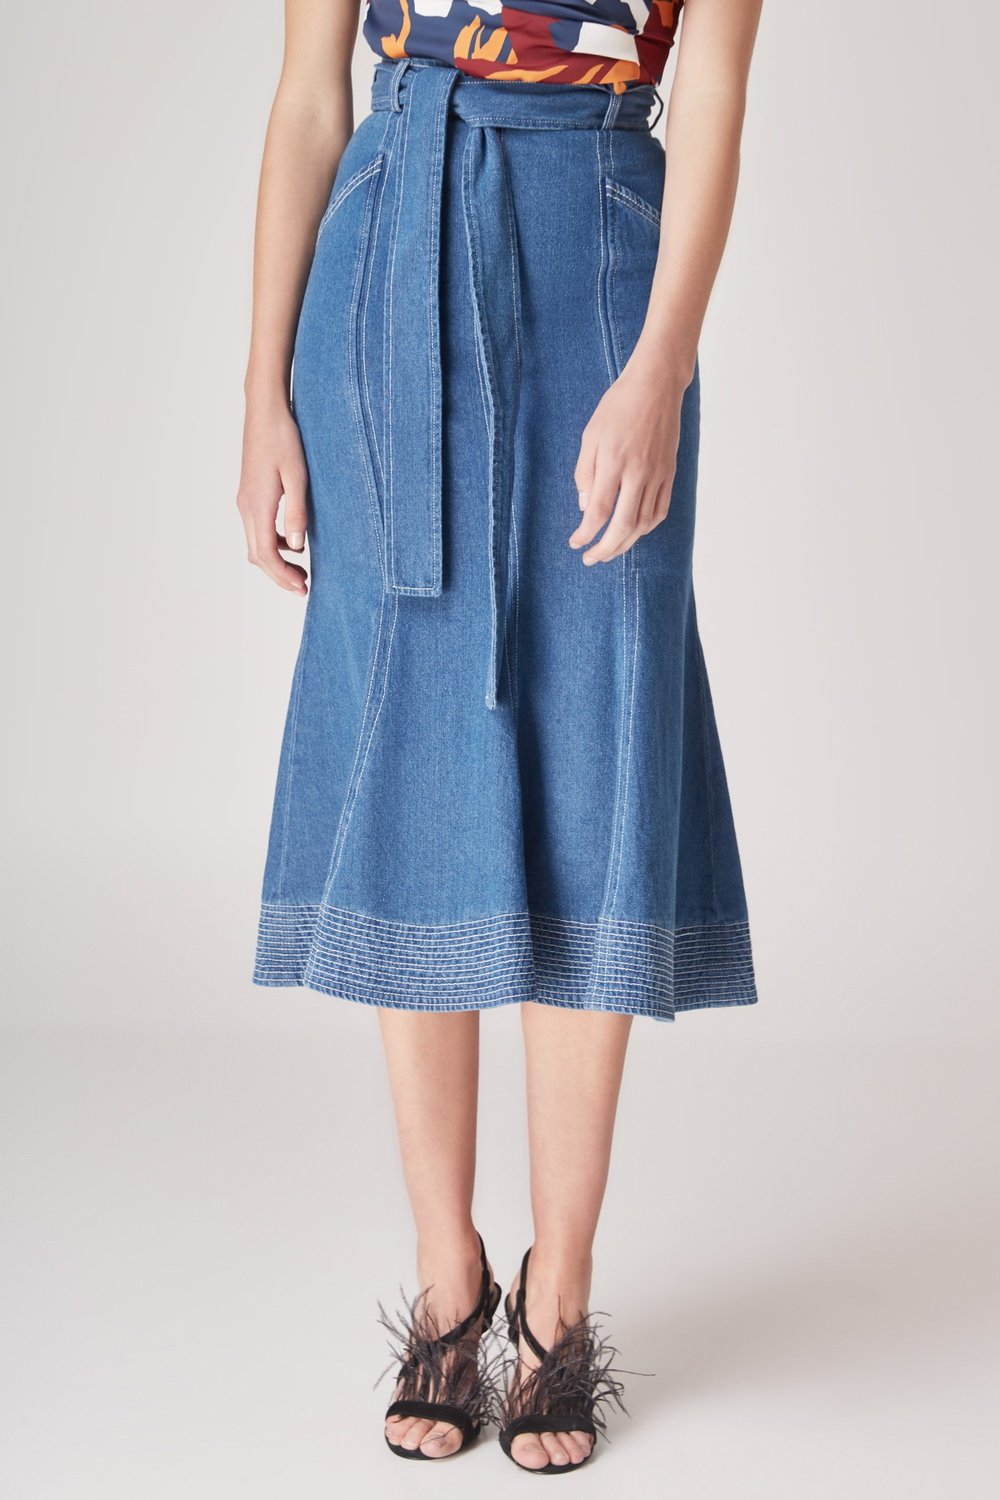 C/MEO Collective Perpetual Dreams Midi Skirt